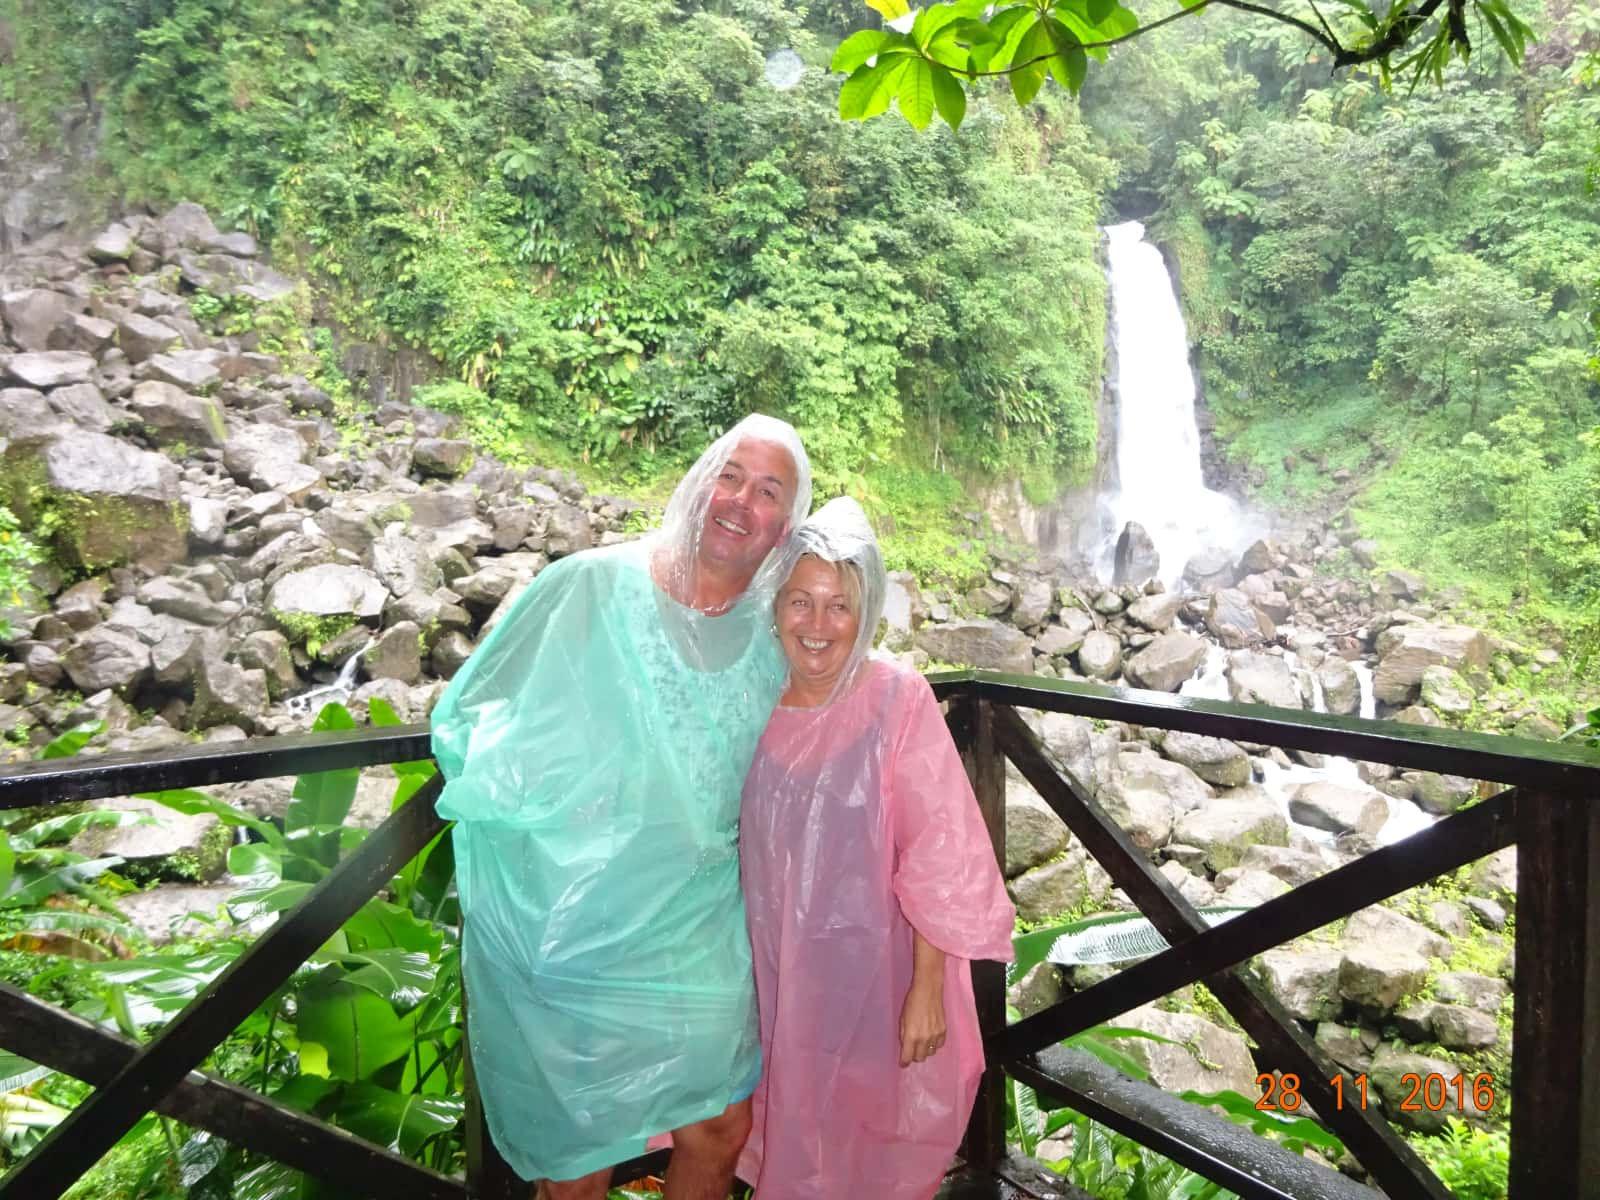 Andy & Bev from Colchester, United Kingdom